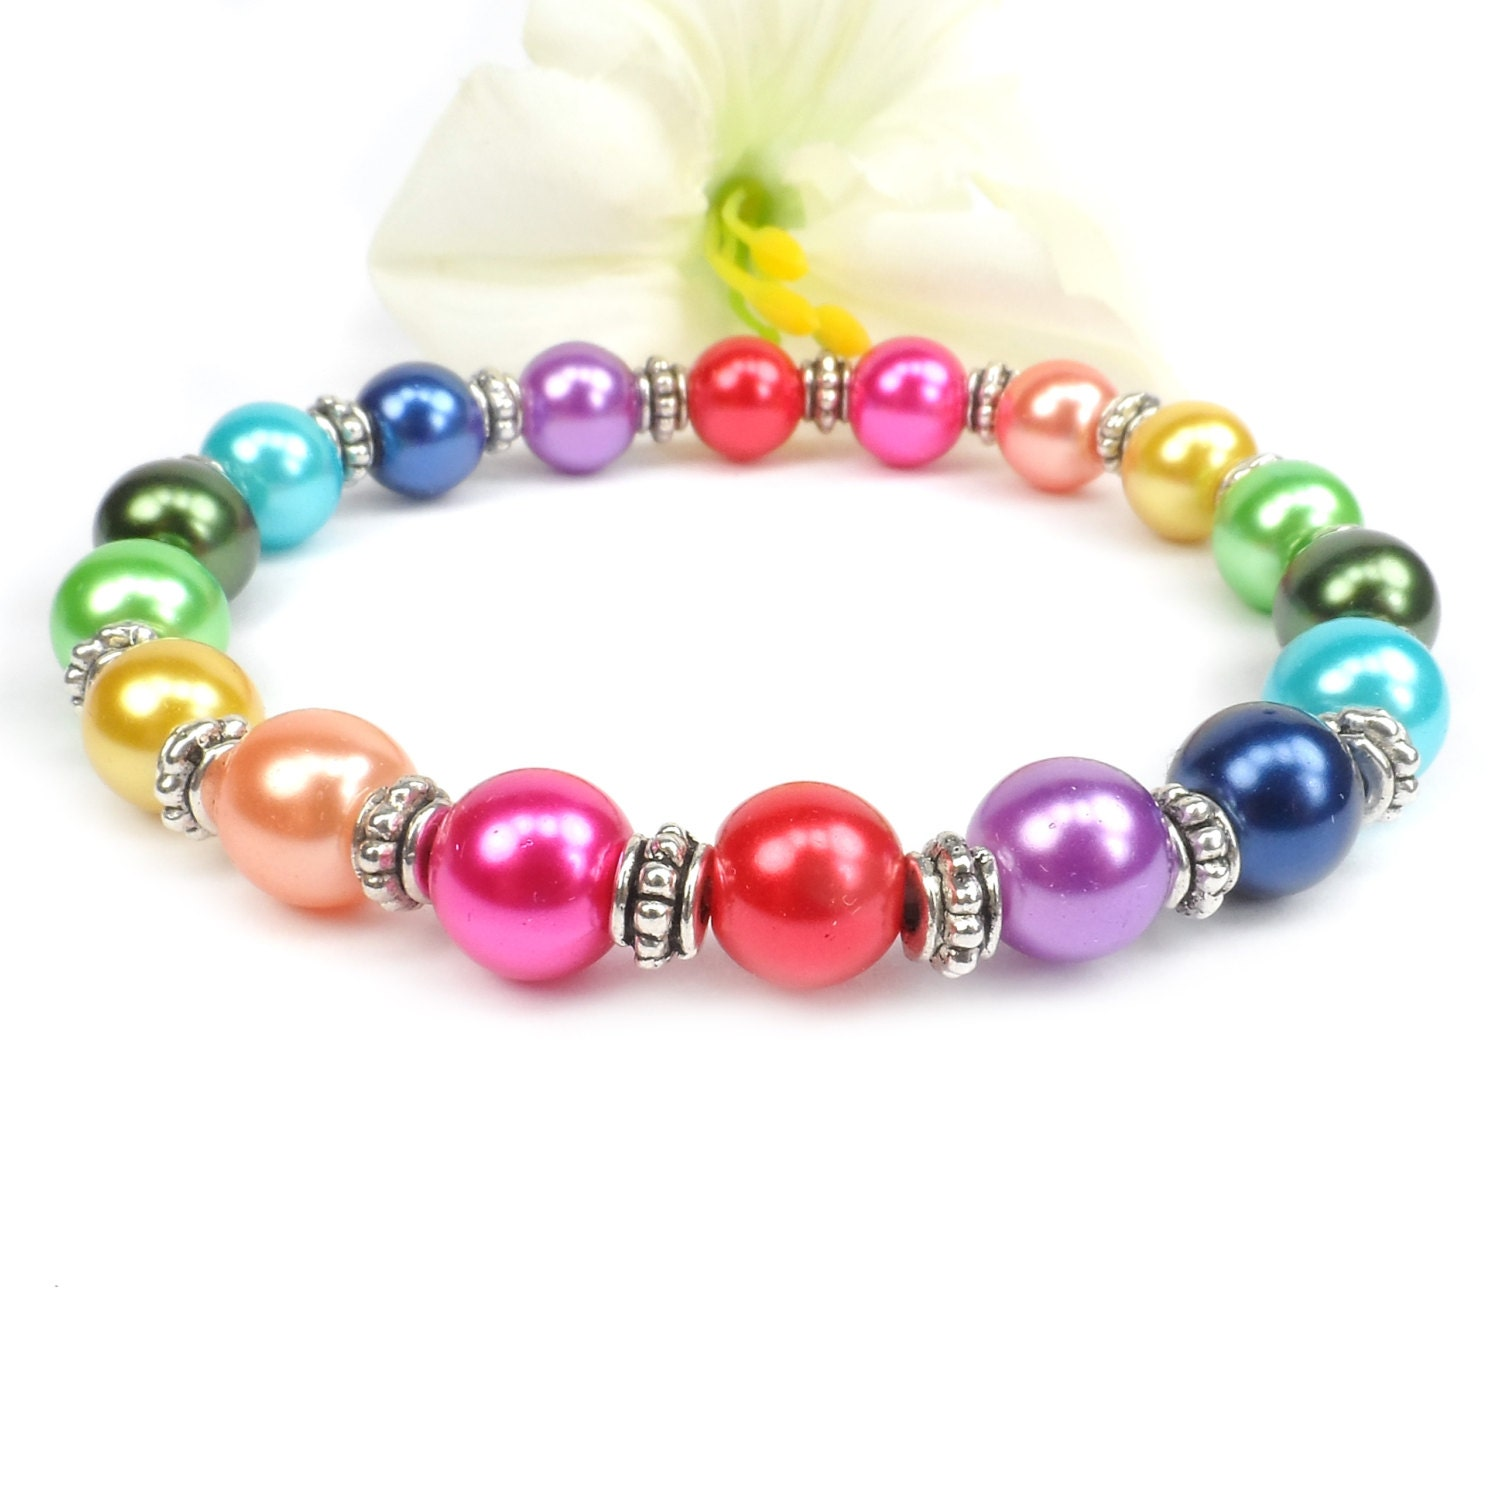 Rainbow Bracelet Colorful Jewelry Pearl Stretch Bracelet. Cocktail Ring Diamond. Tosset Watches. Pizza Necklace. Silver Earrings. Mens Band Rings. Ear Piercing Stud Earrings. Real Bone Necklace. Overwatch Platinum